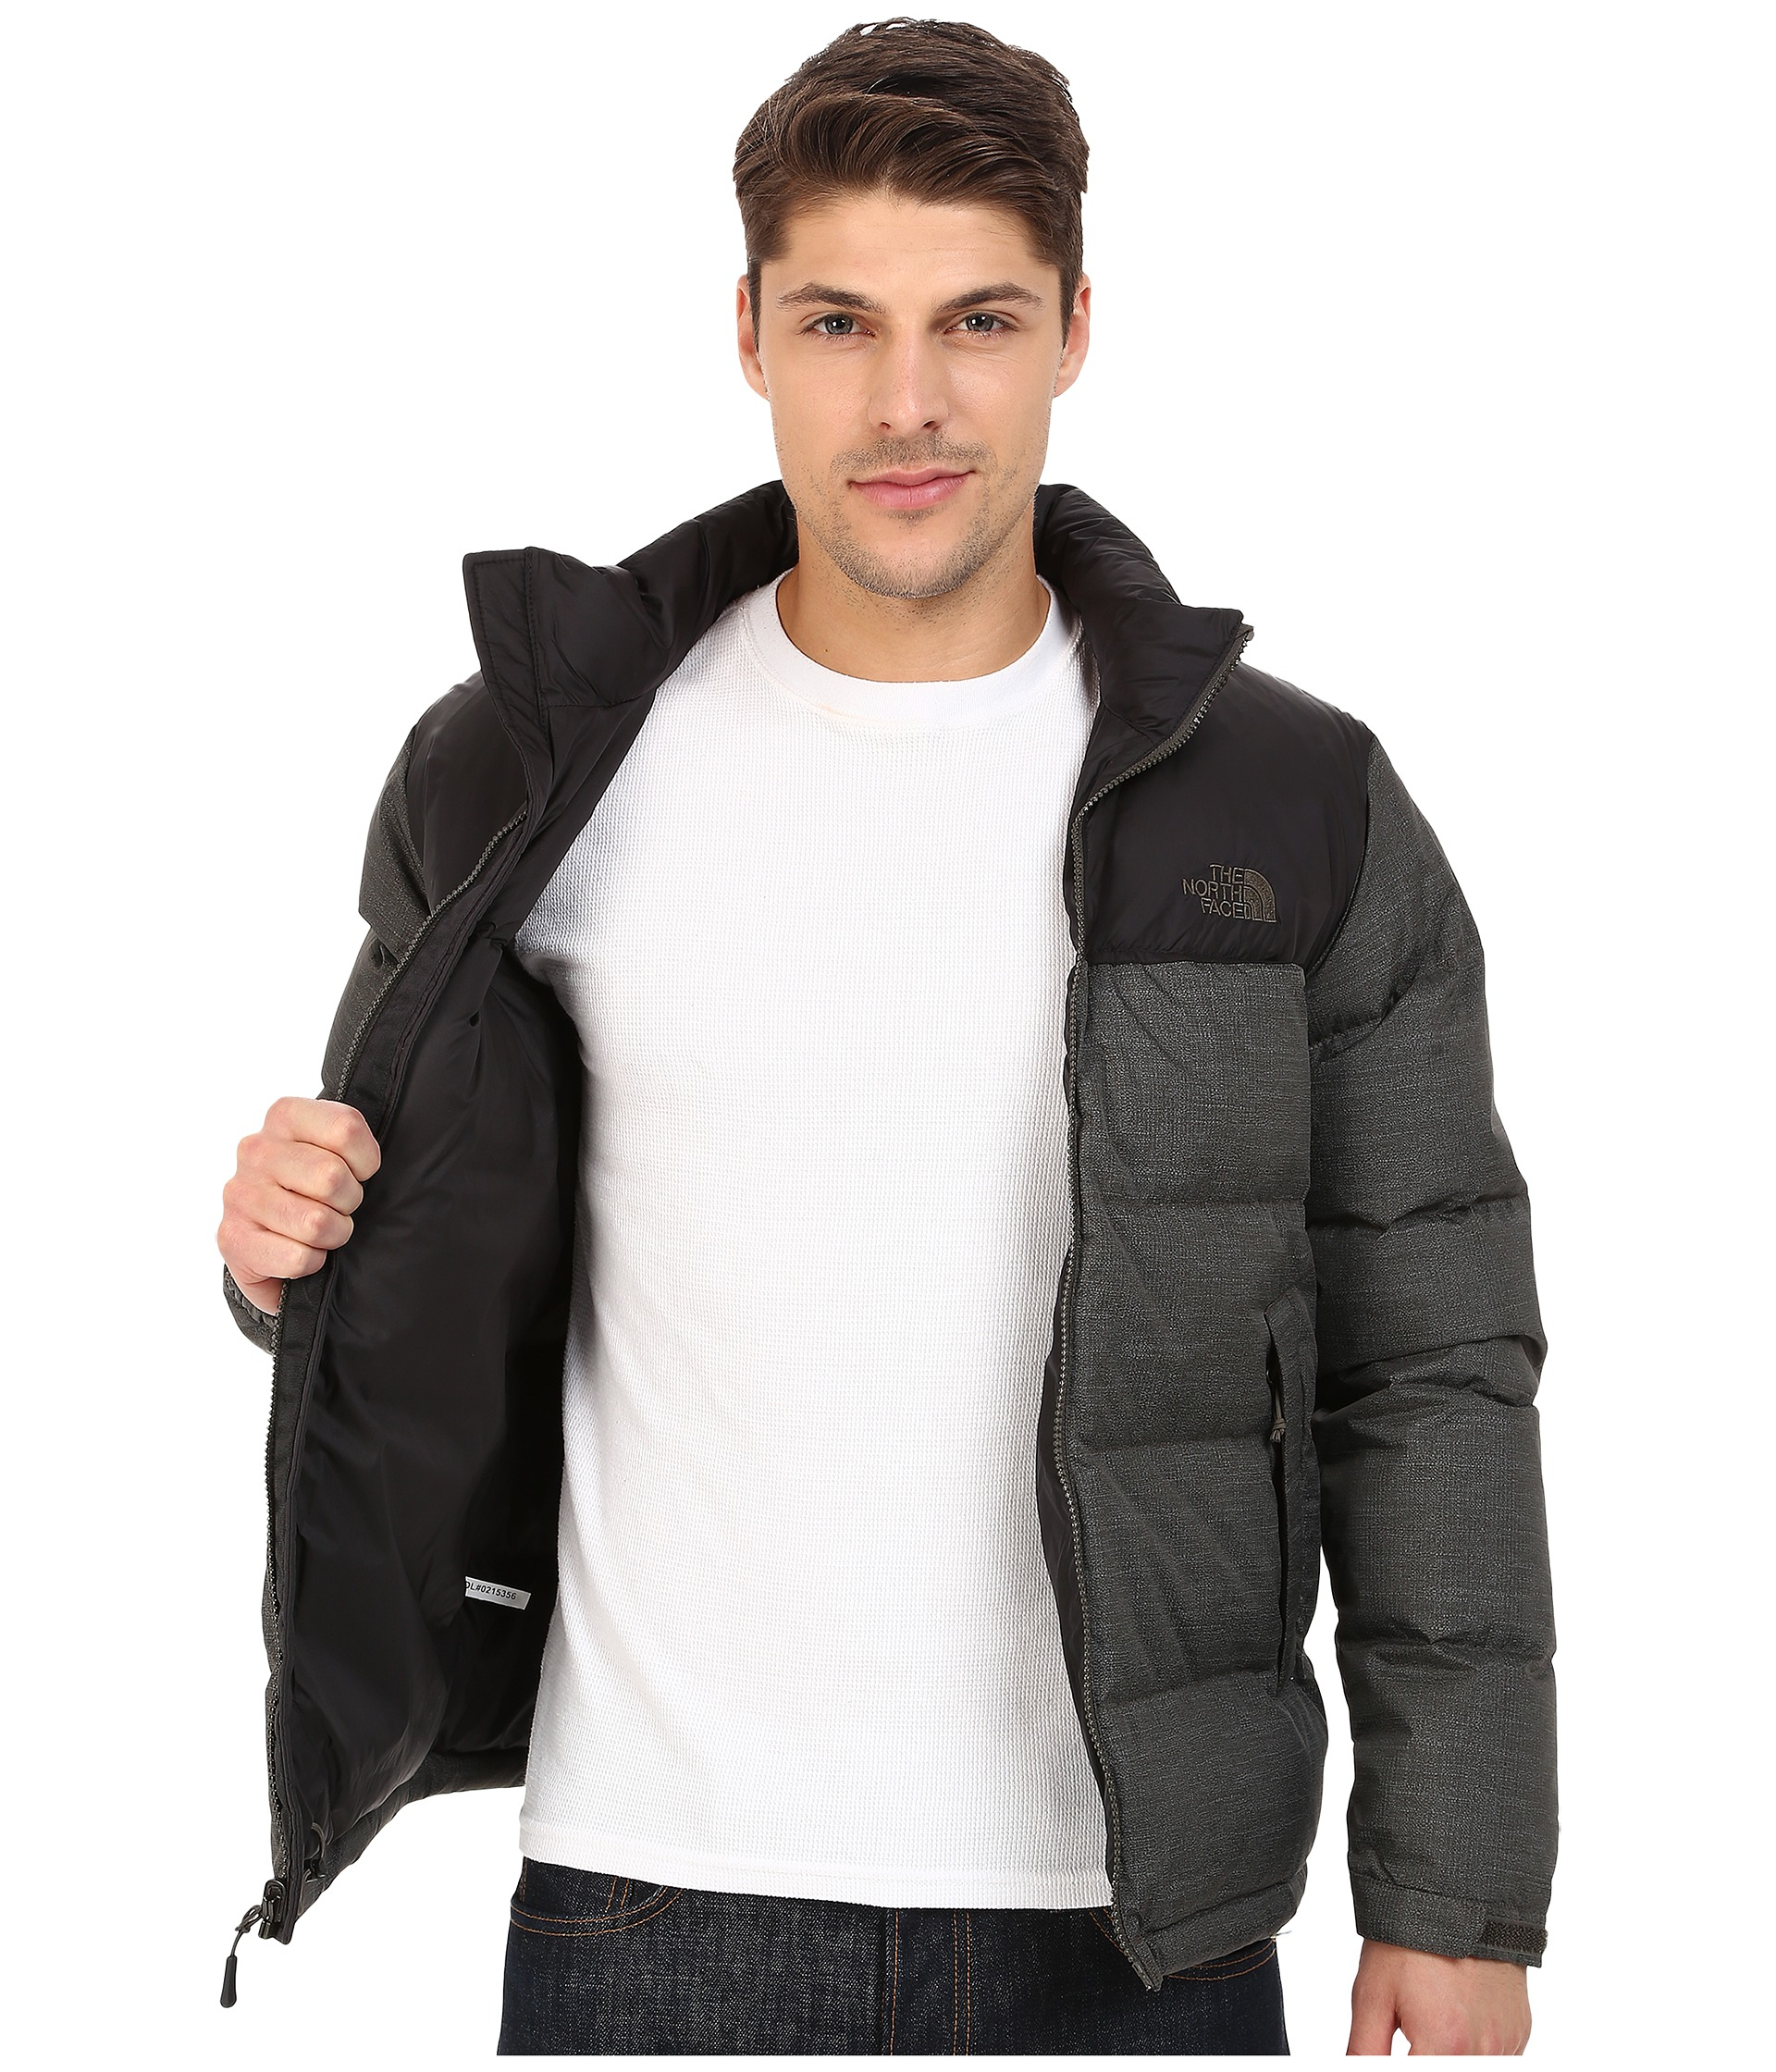 f47ee16374 Lyst - The North Face Nuptse Jacket in Black for Men